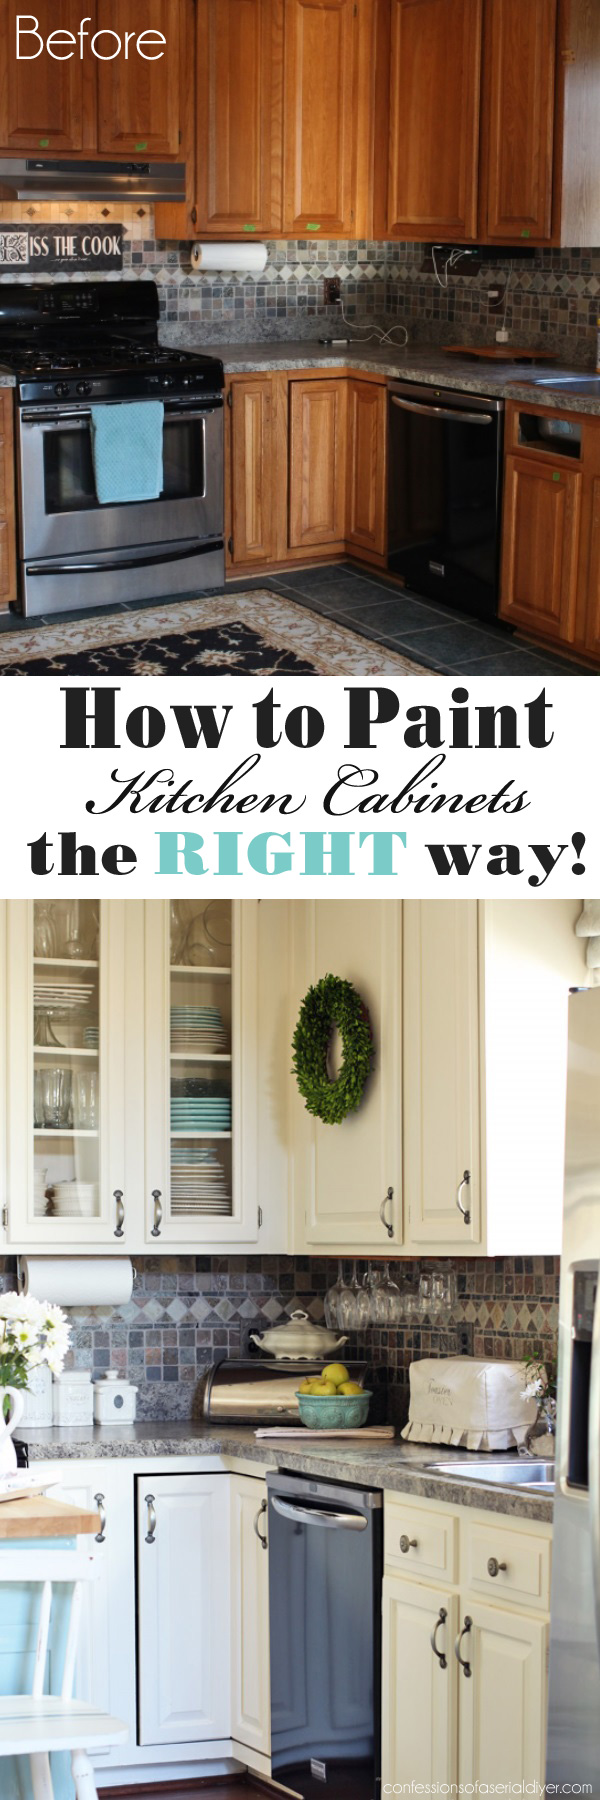 How to paint kitchen cabinets a step by step guide for What is the best way to paint kitchen cabinets white